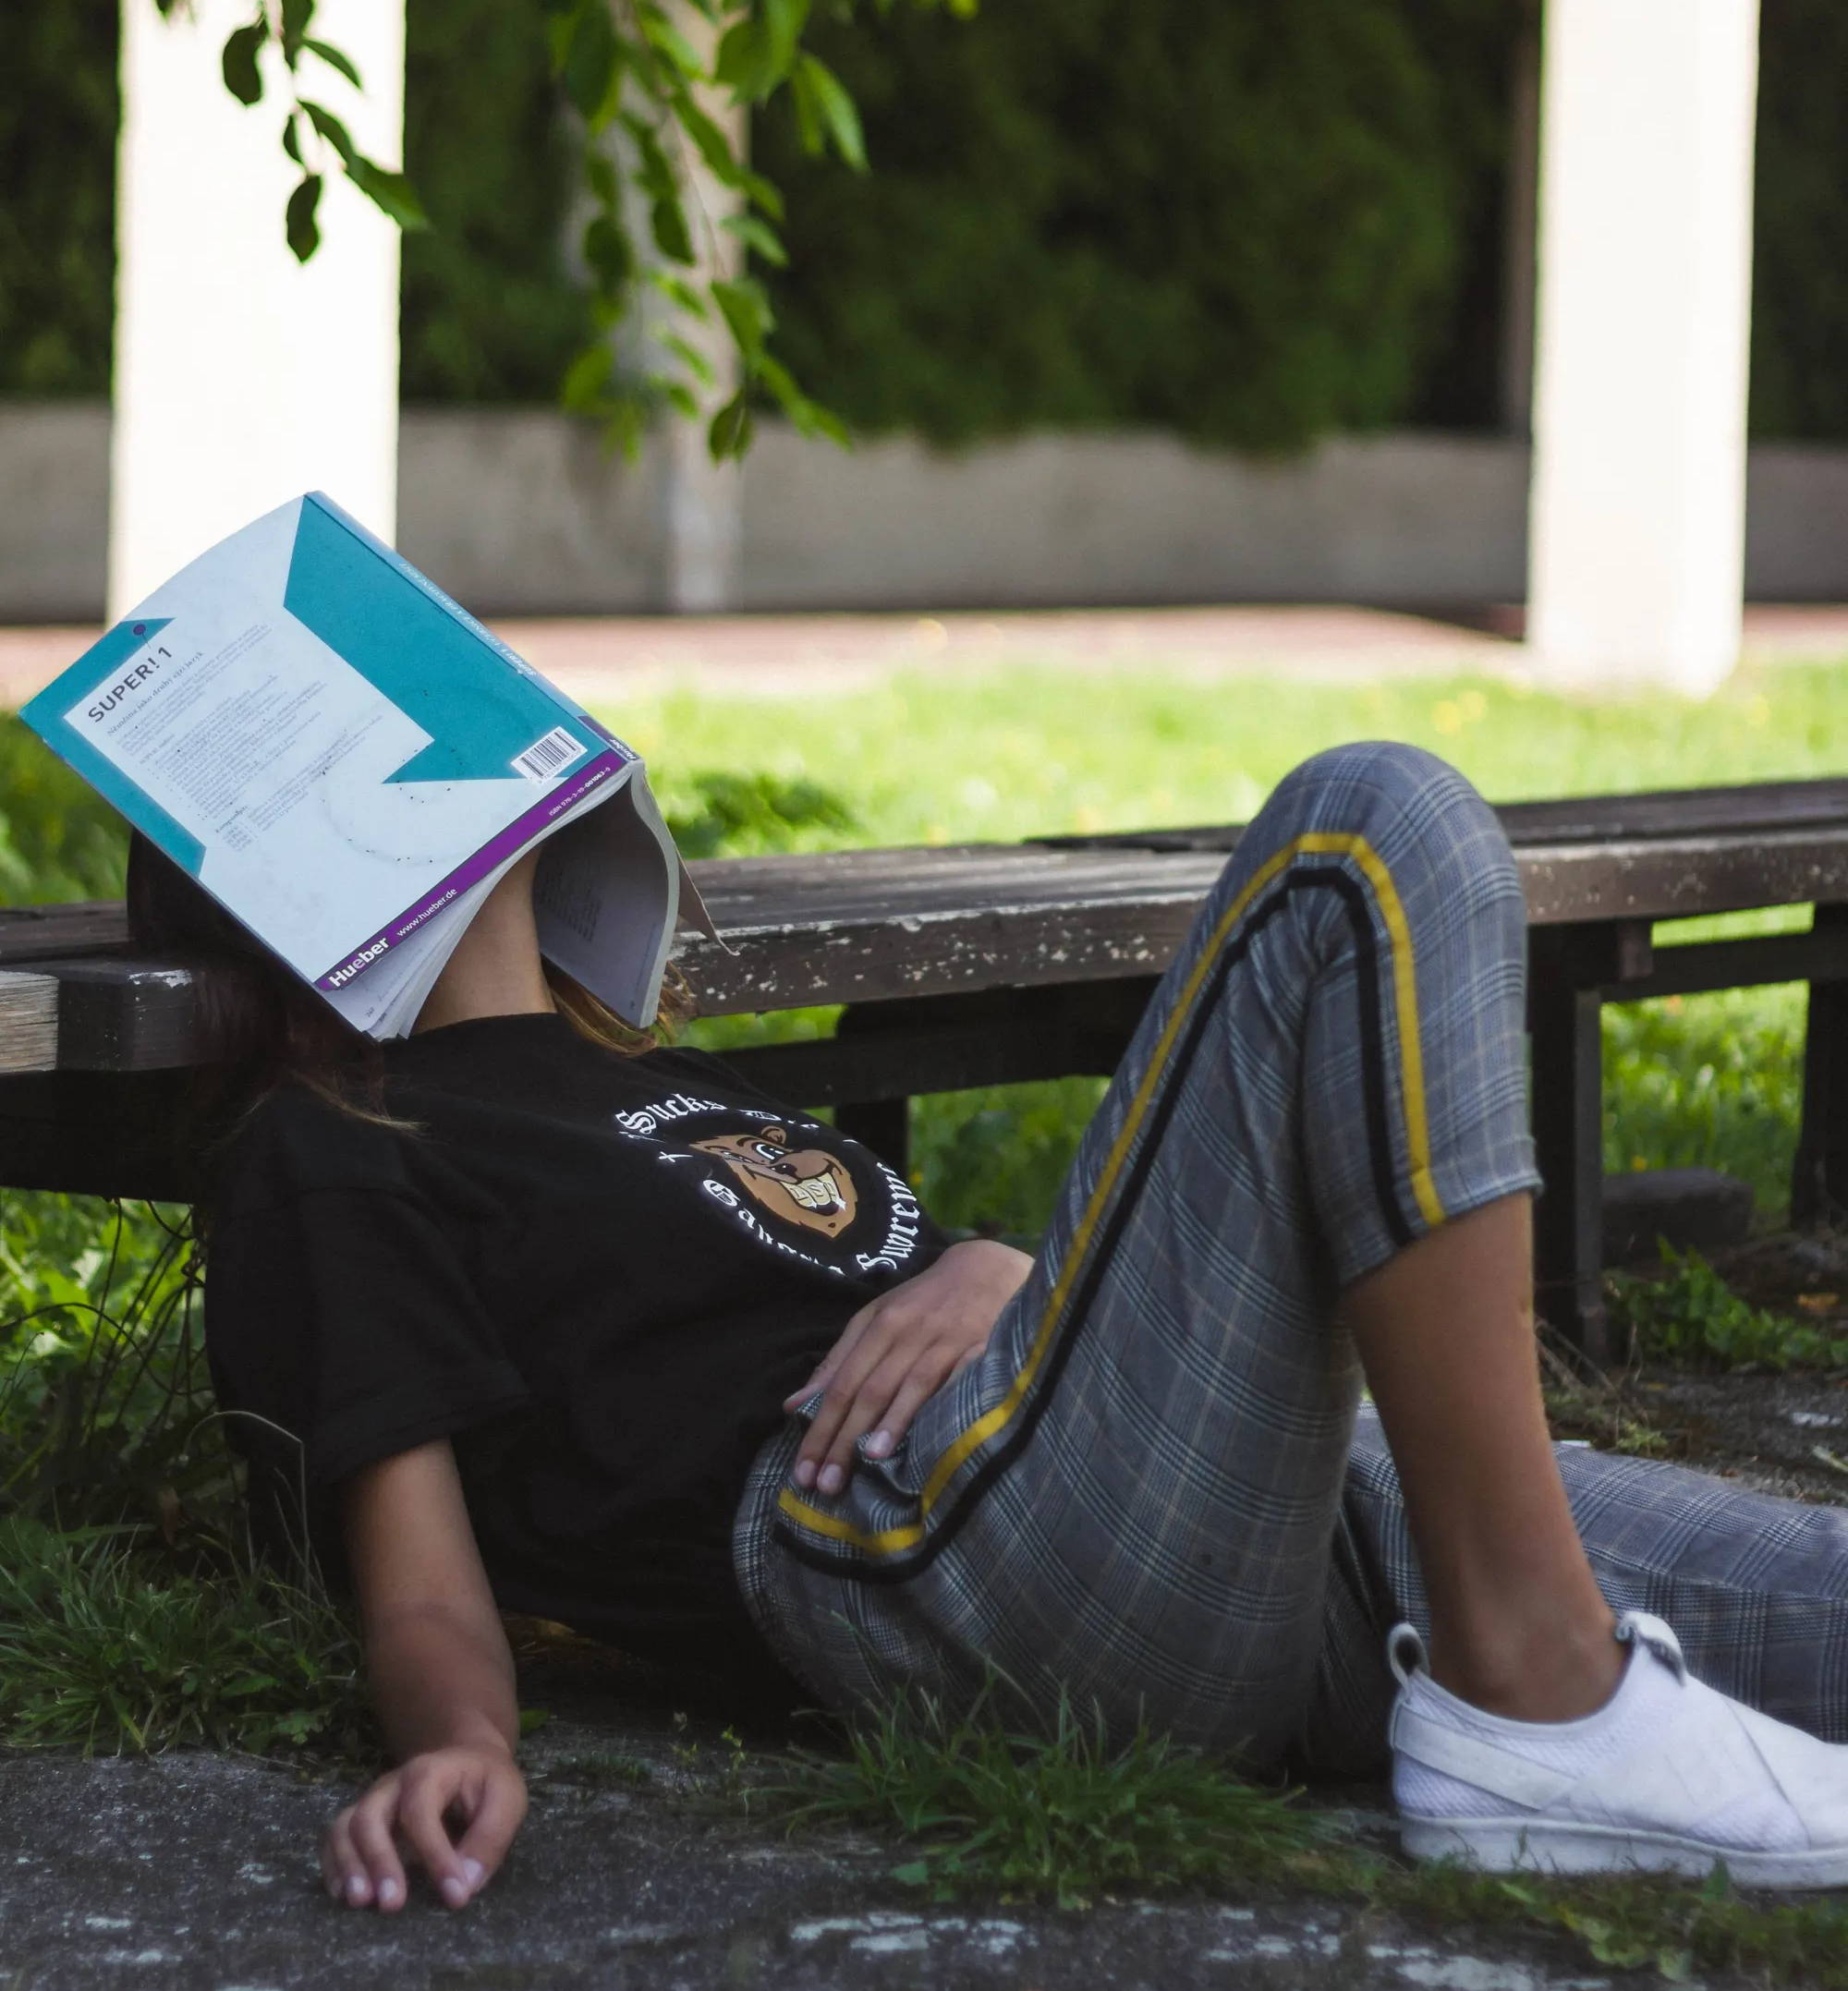 Woman sitting on the grass leaning on a bench with a book on her face, sleeping.